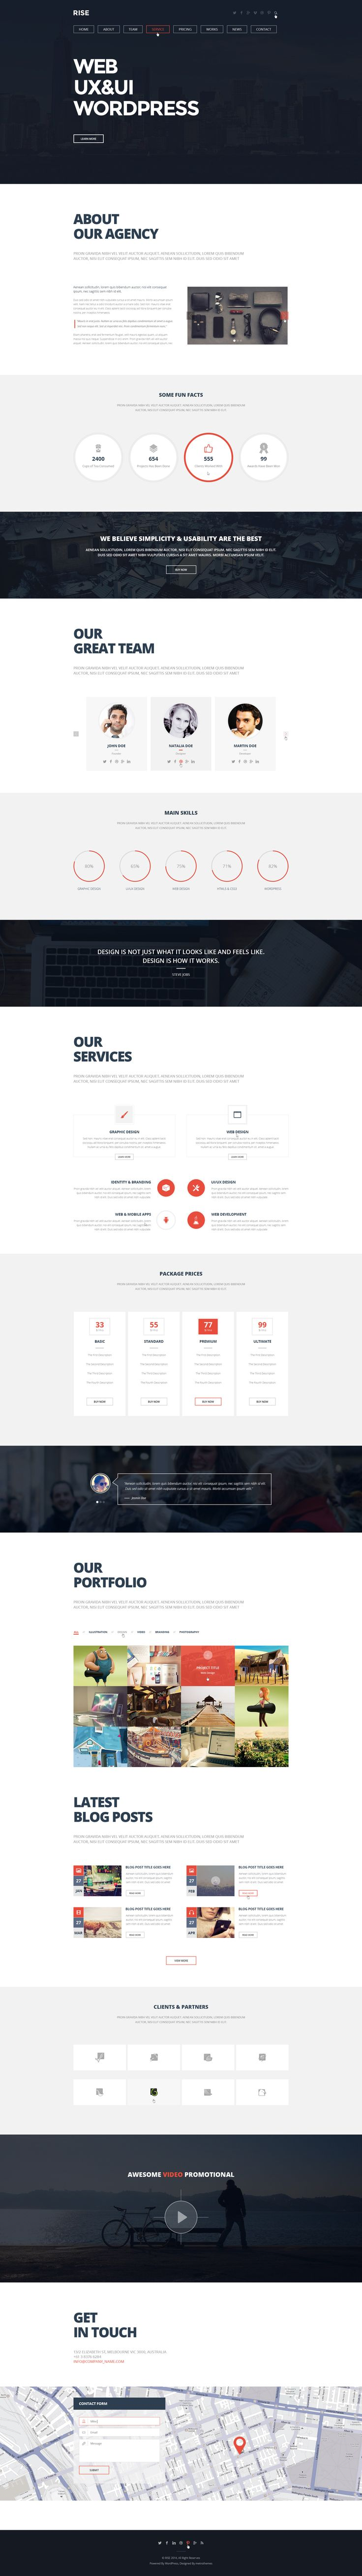 32 best Web page images on Pinterest | Wordpress template, Design ...